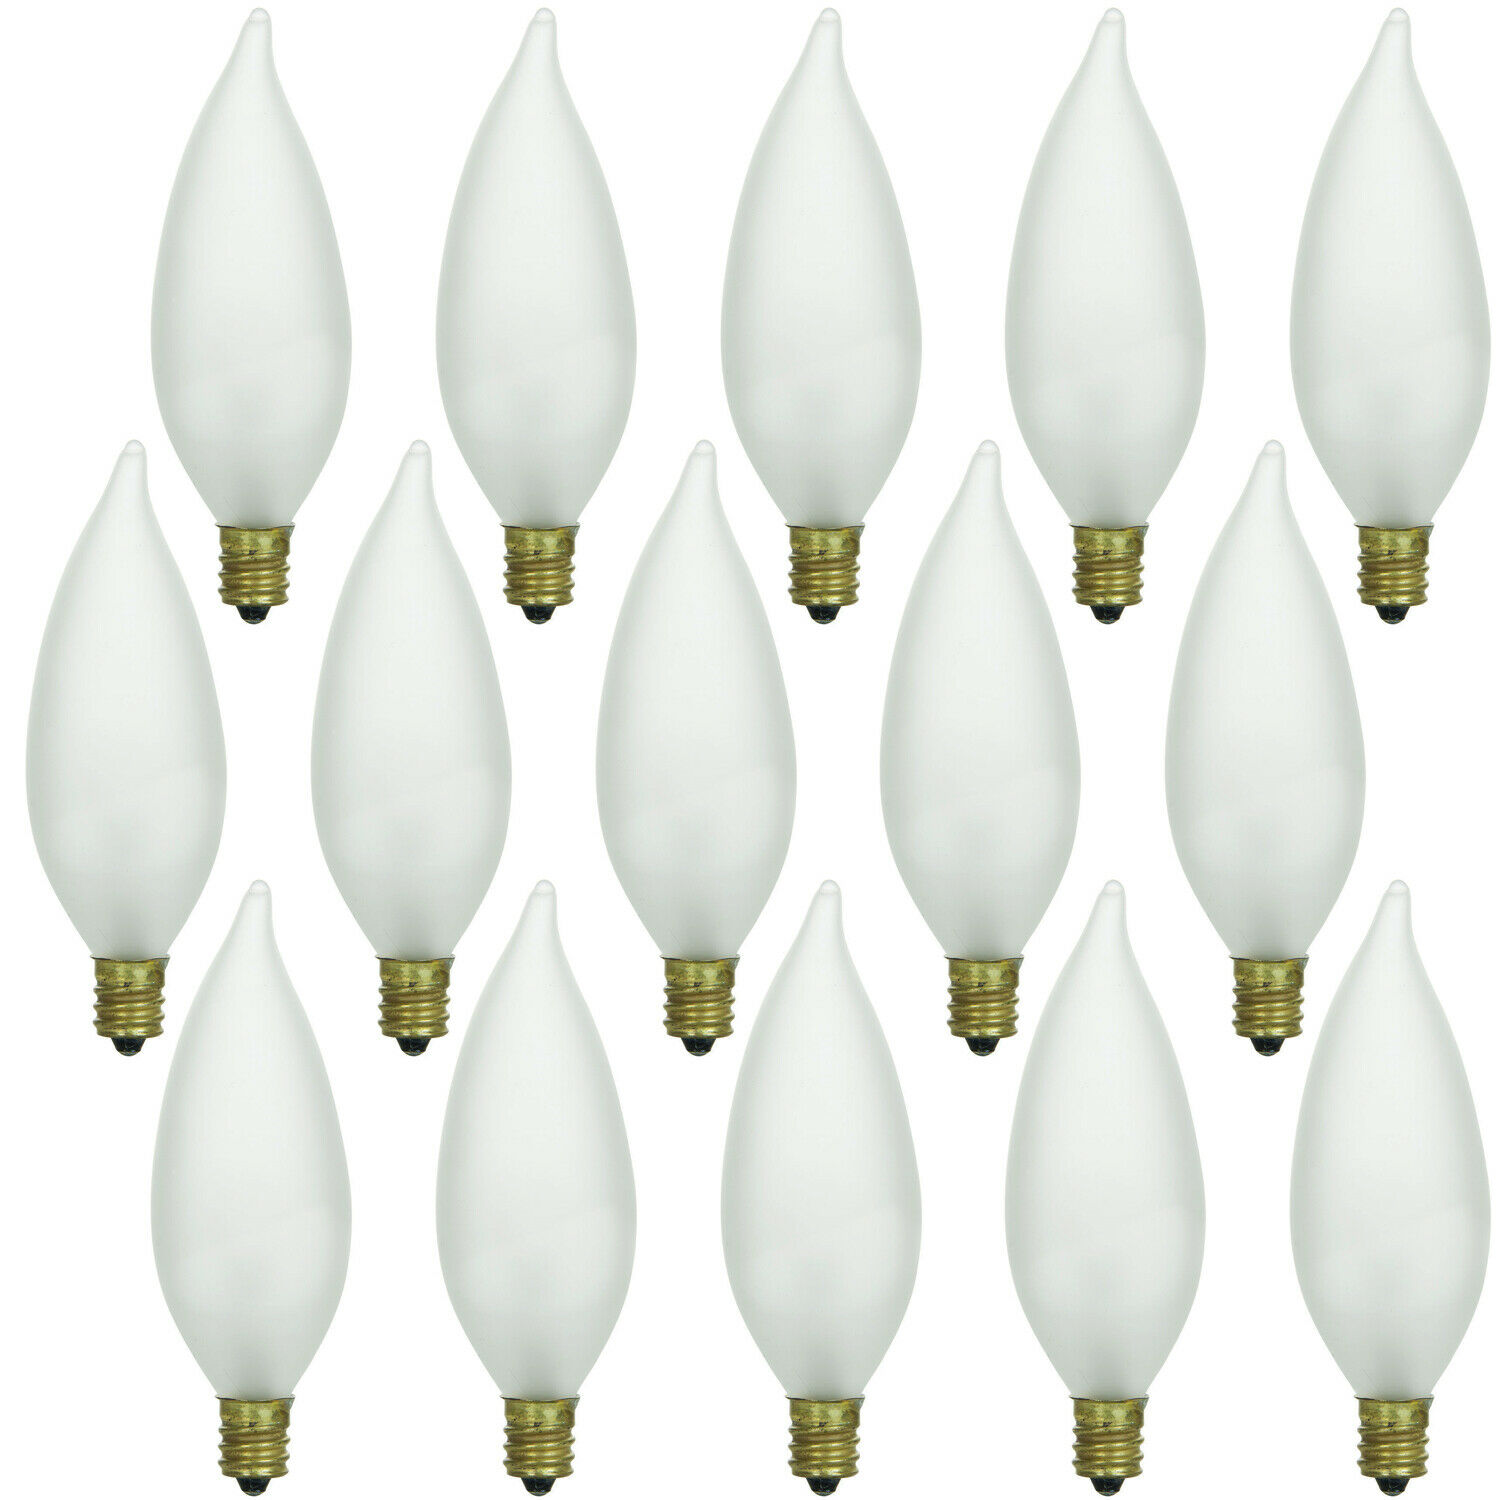 15 Pack 40w Frosted Flame Tip Chandelier Light Bulbs E12 Candelabra Base Er 1 Of 1free See More